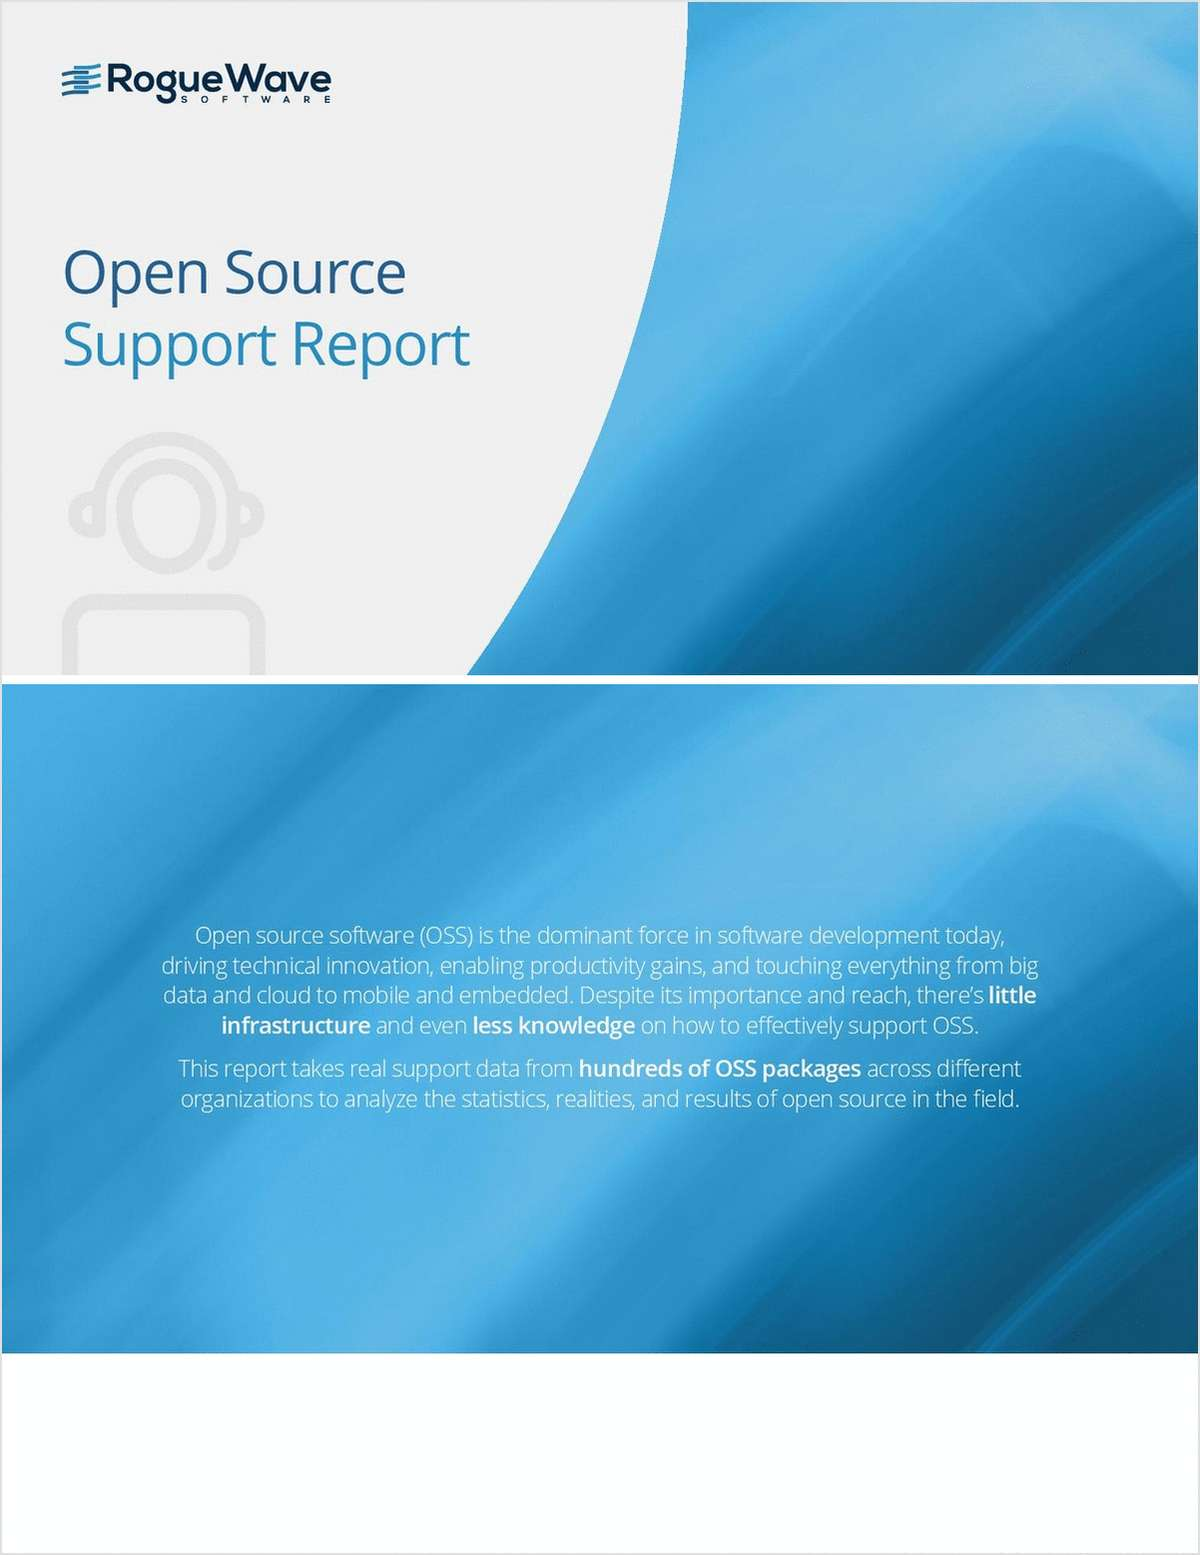 Open Source Support Report